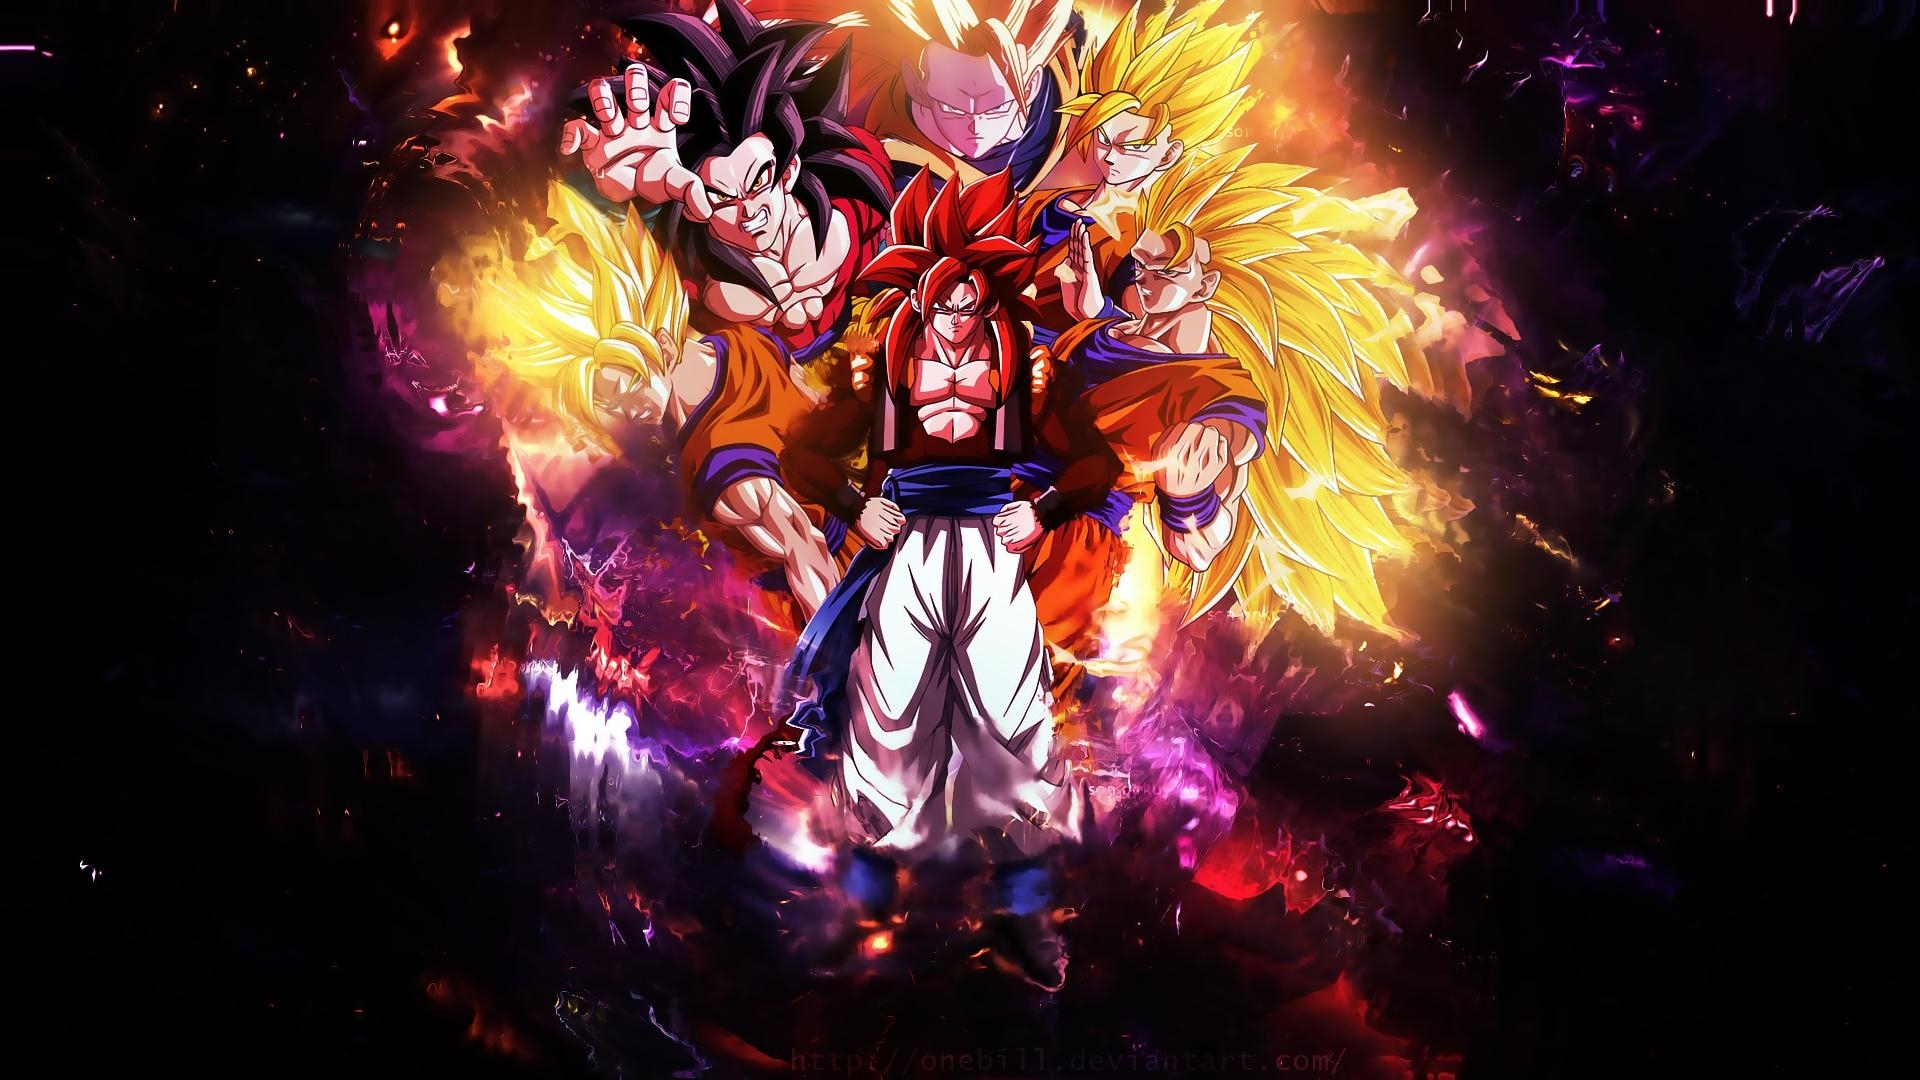 goku wallpapers - wallpaper cave full hd wallpaper and background